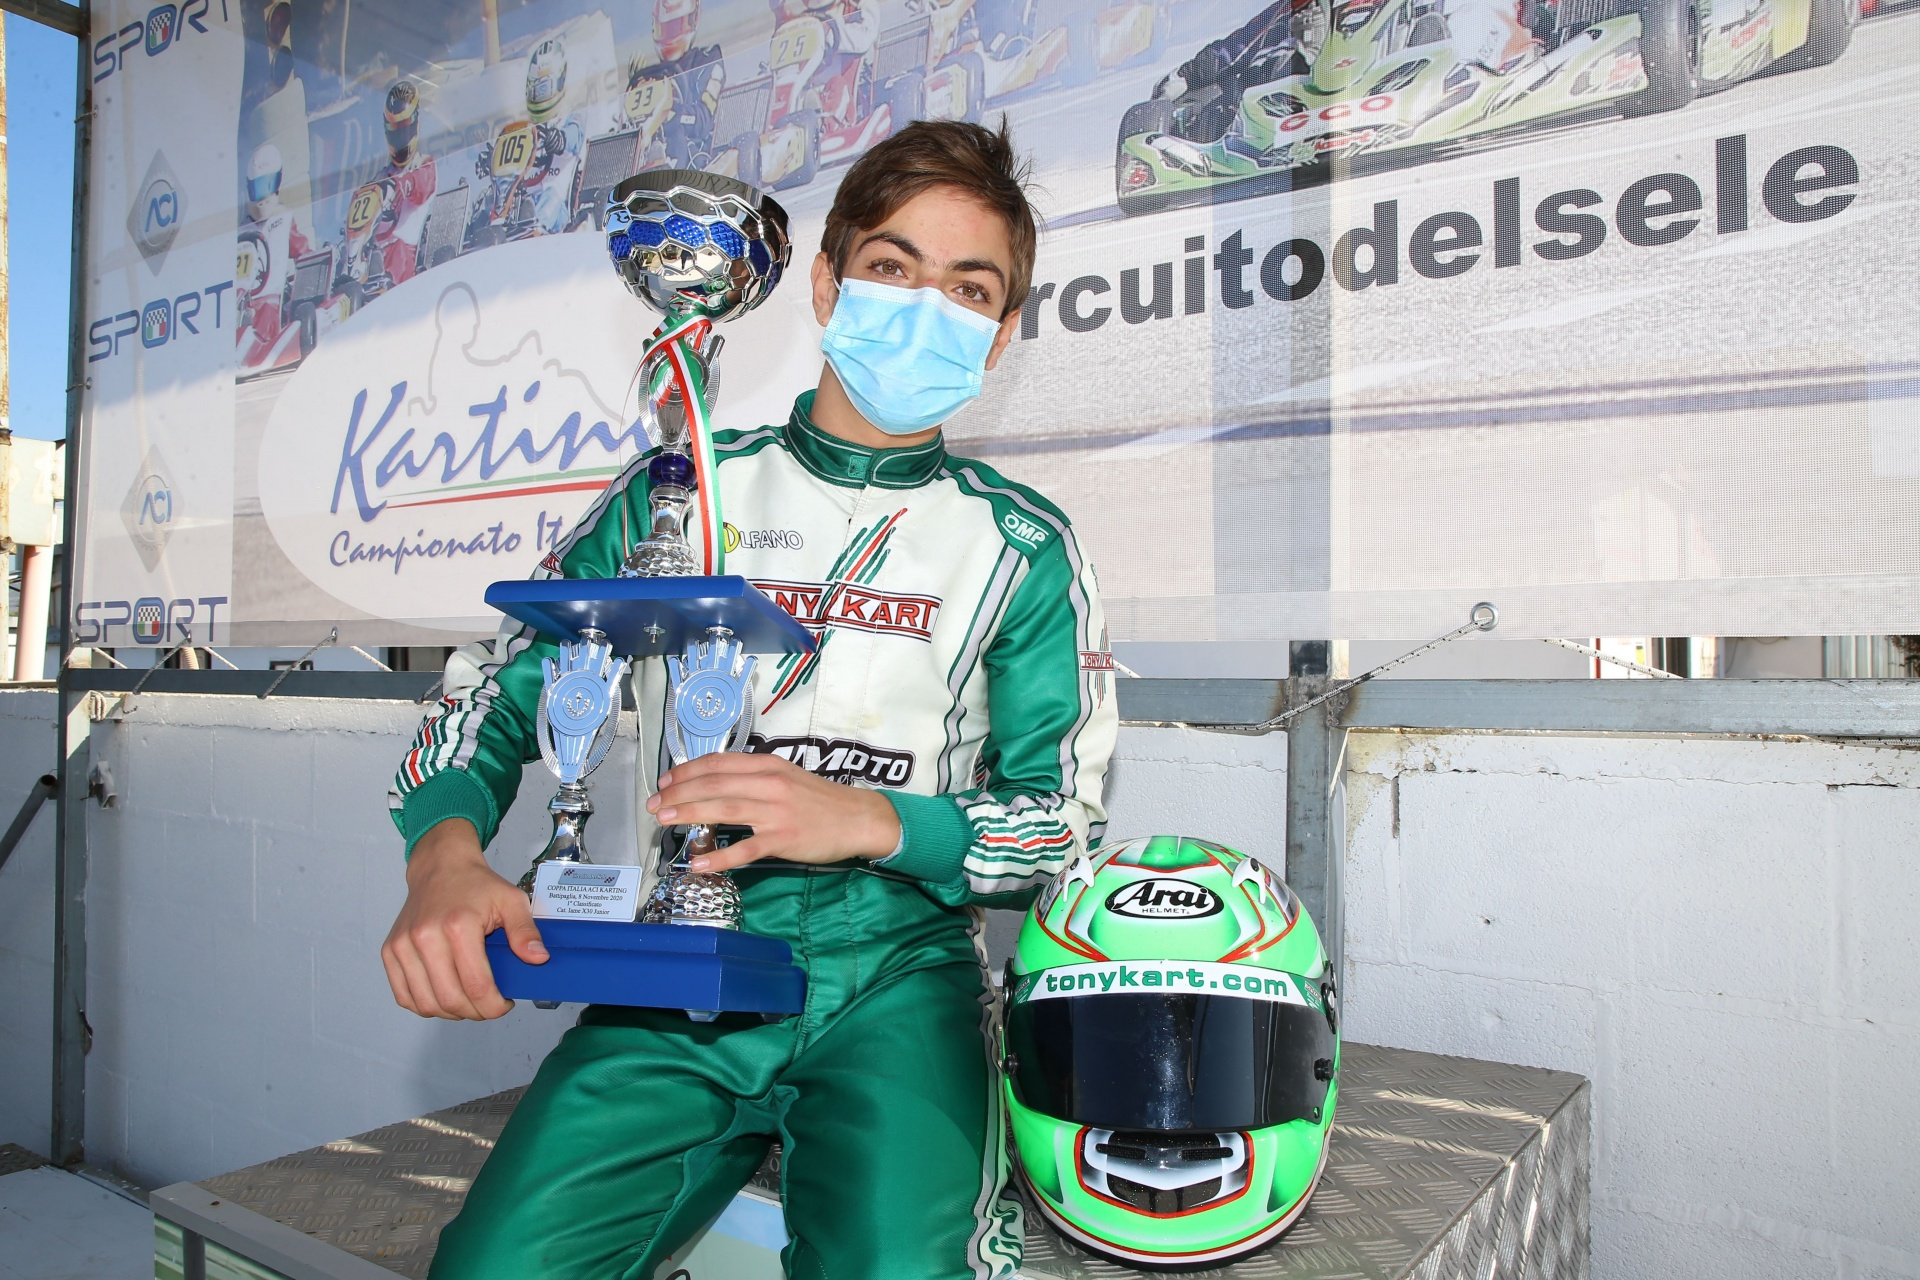 Gamoto Kart wins the Coppa Italia in X30 Junior